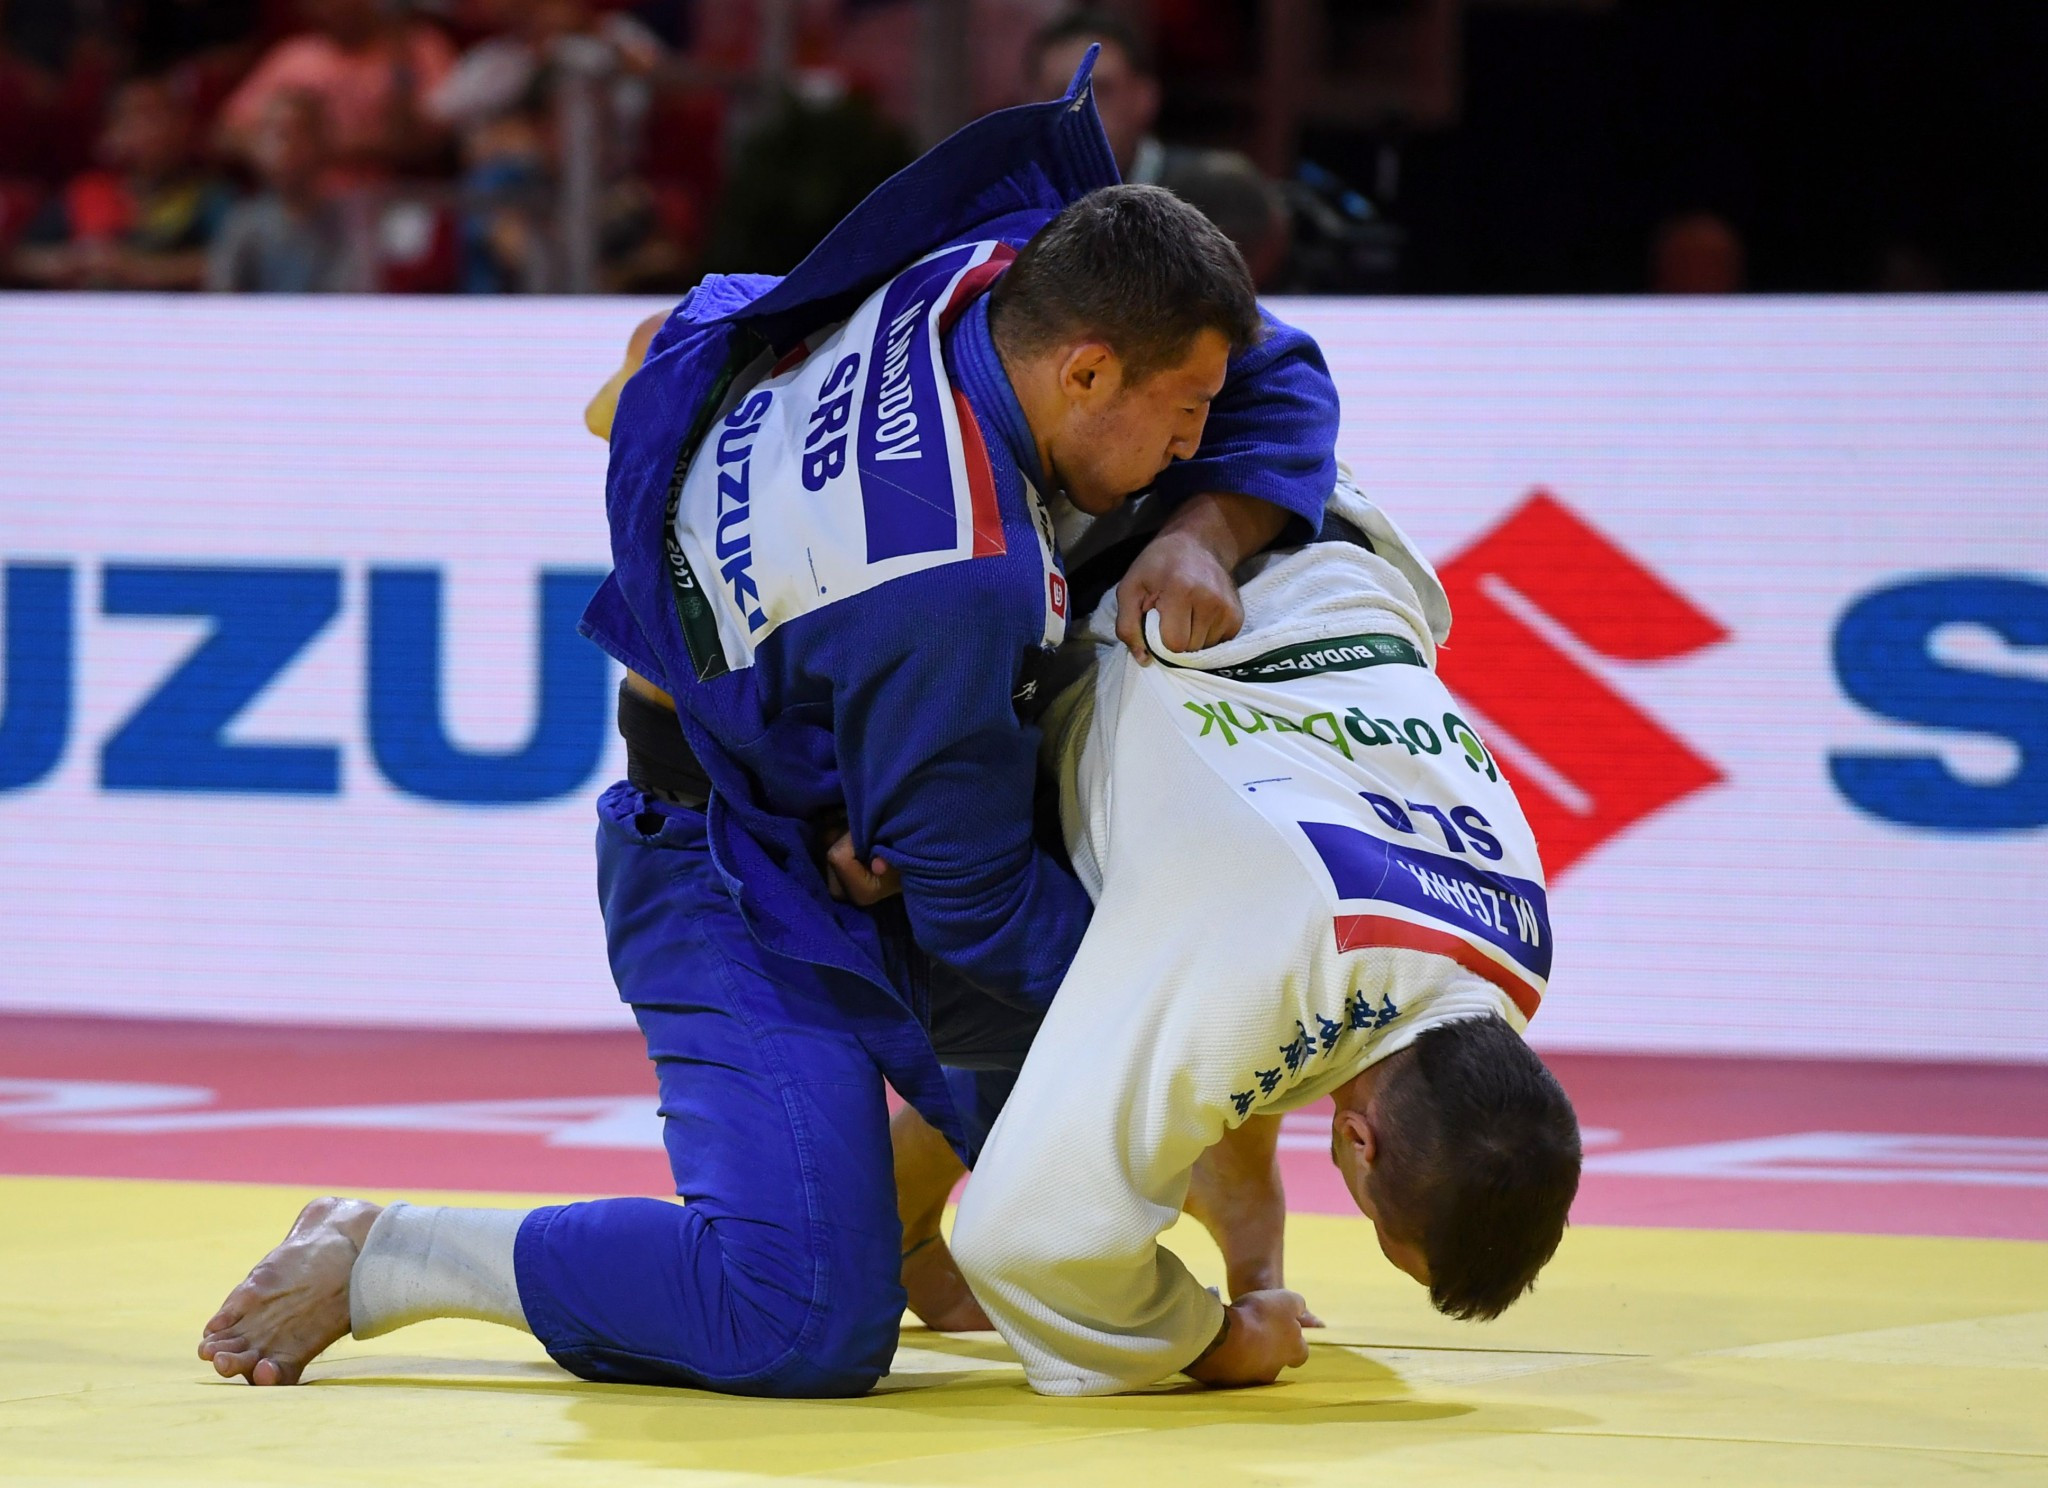 Serbia's Nemanja Majdov secured the other title on offer today as he overcame Mihael Žgank of Slovenia in the men's under-90kg final ©Getty Images